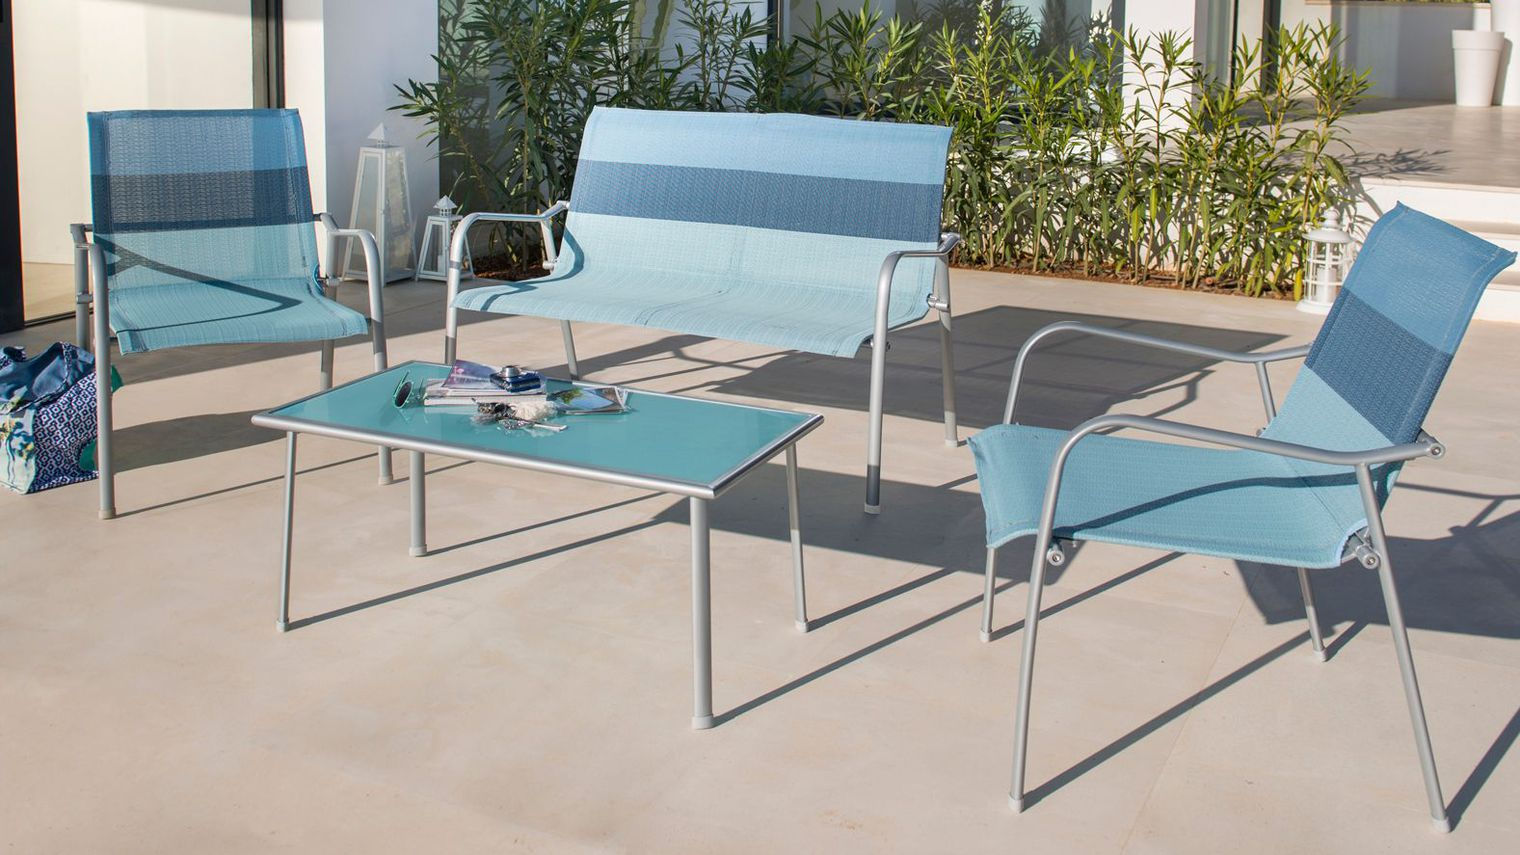 Table basse salon de jardin pas cher mobilier design for Mobilier salon pas cher